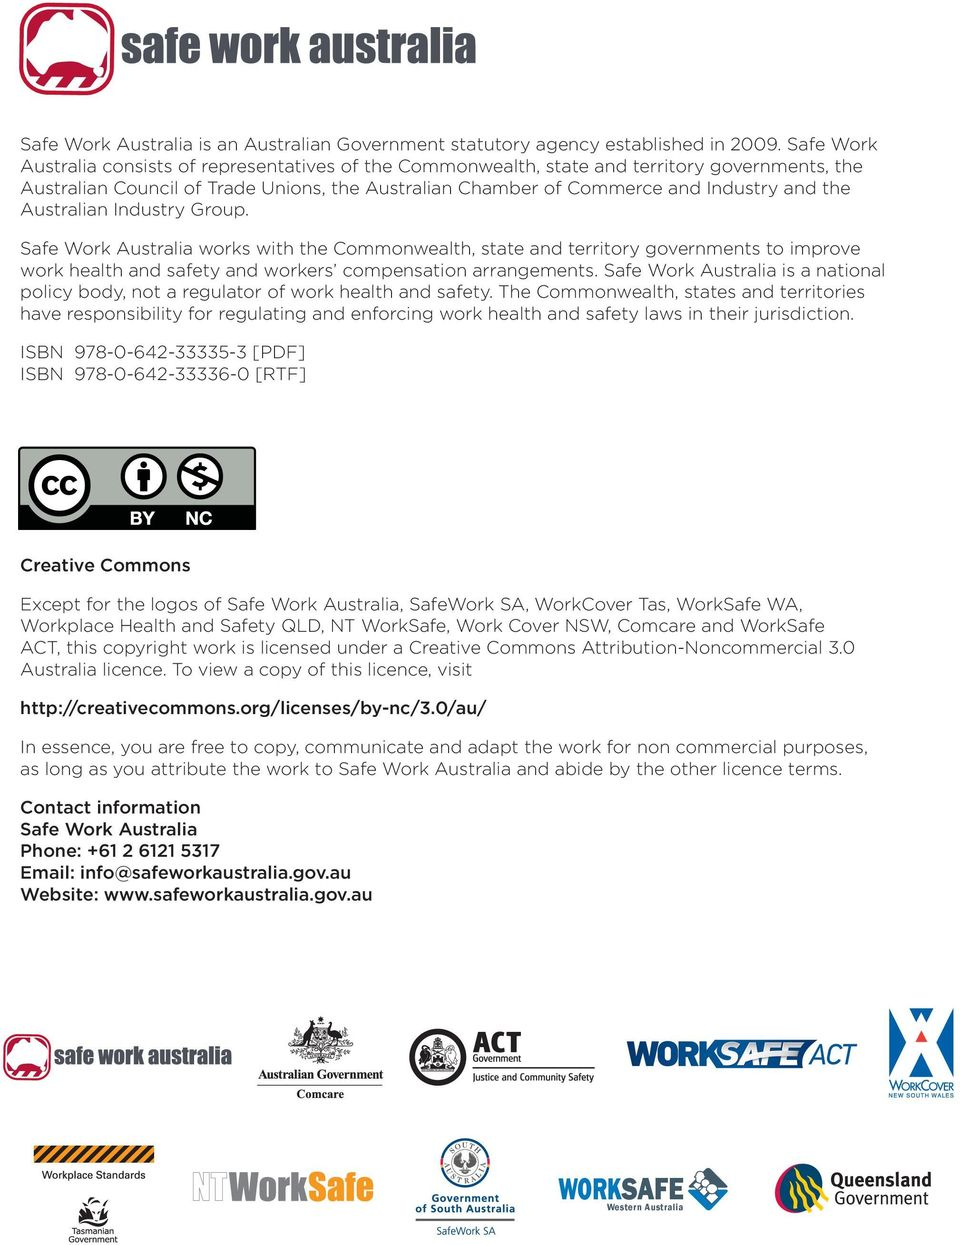 Australian Industry Group. Safe Work Australia works with the Commonwealth, state and territory governments to improve work health and safety and workers compensation arrangements.